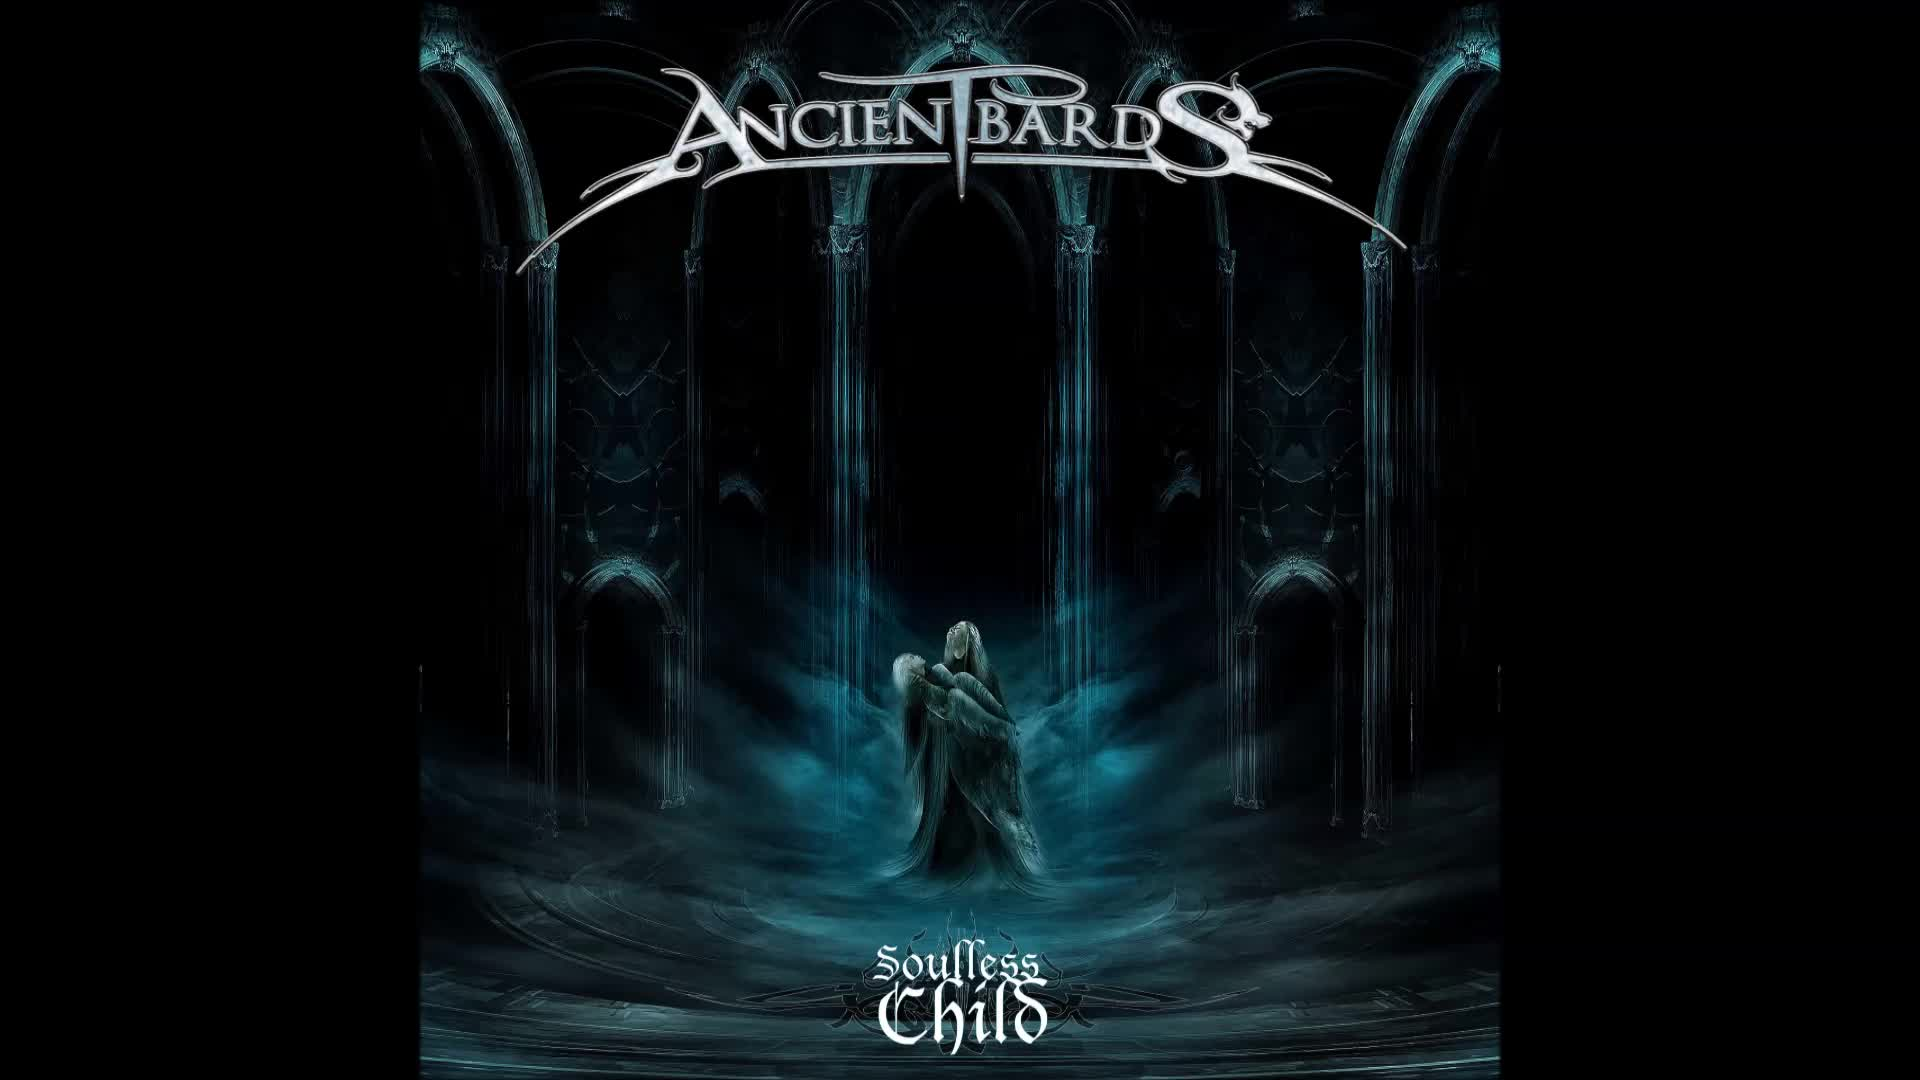 Ancient Bards - Soulless Child announce